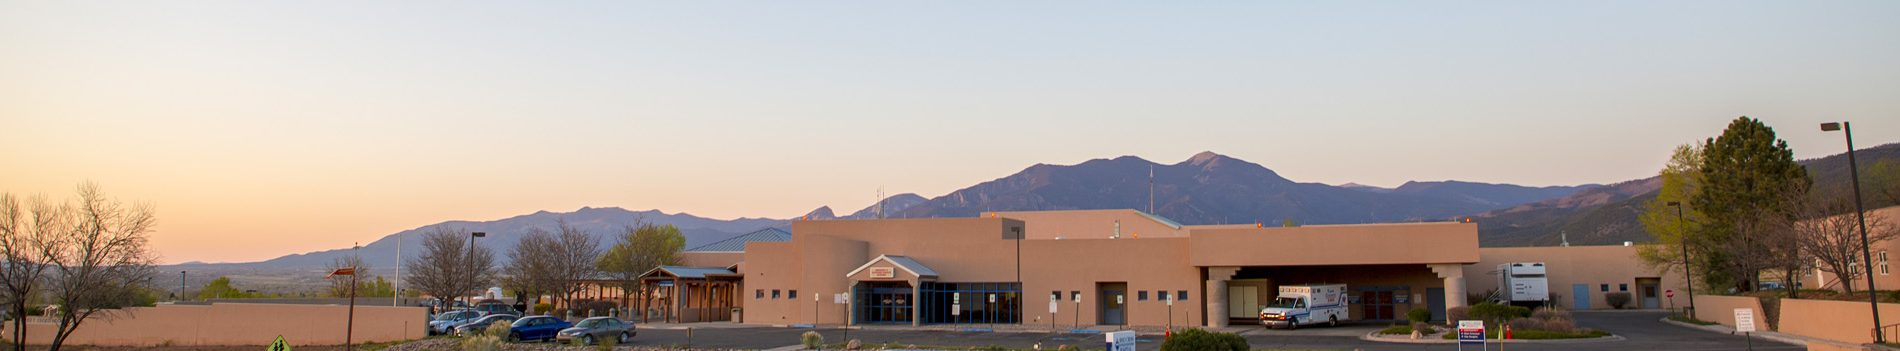 Holy Cross Hospital - Taos, New Mexico - Holy Cross Medical Center